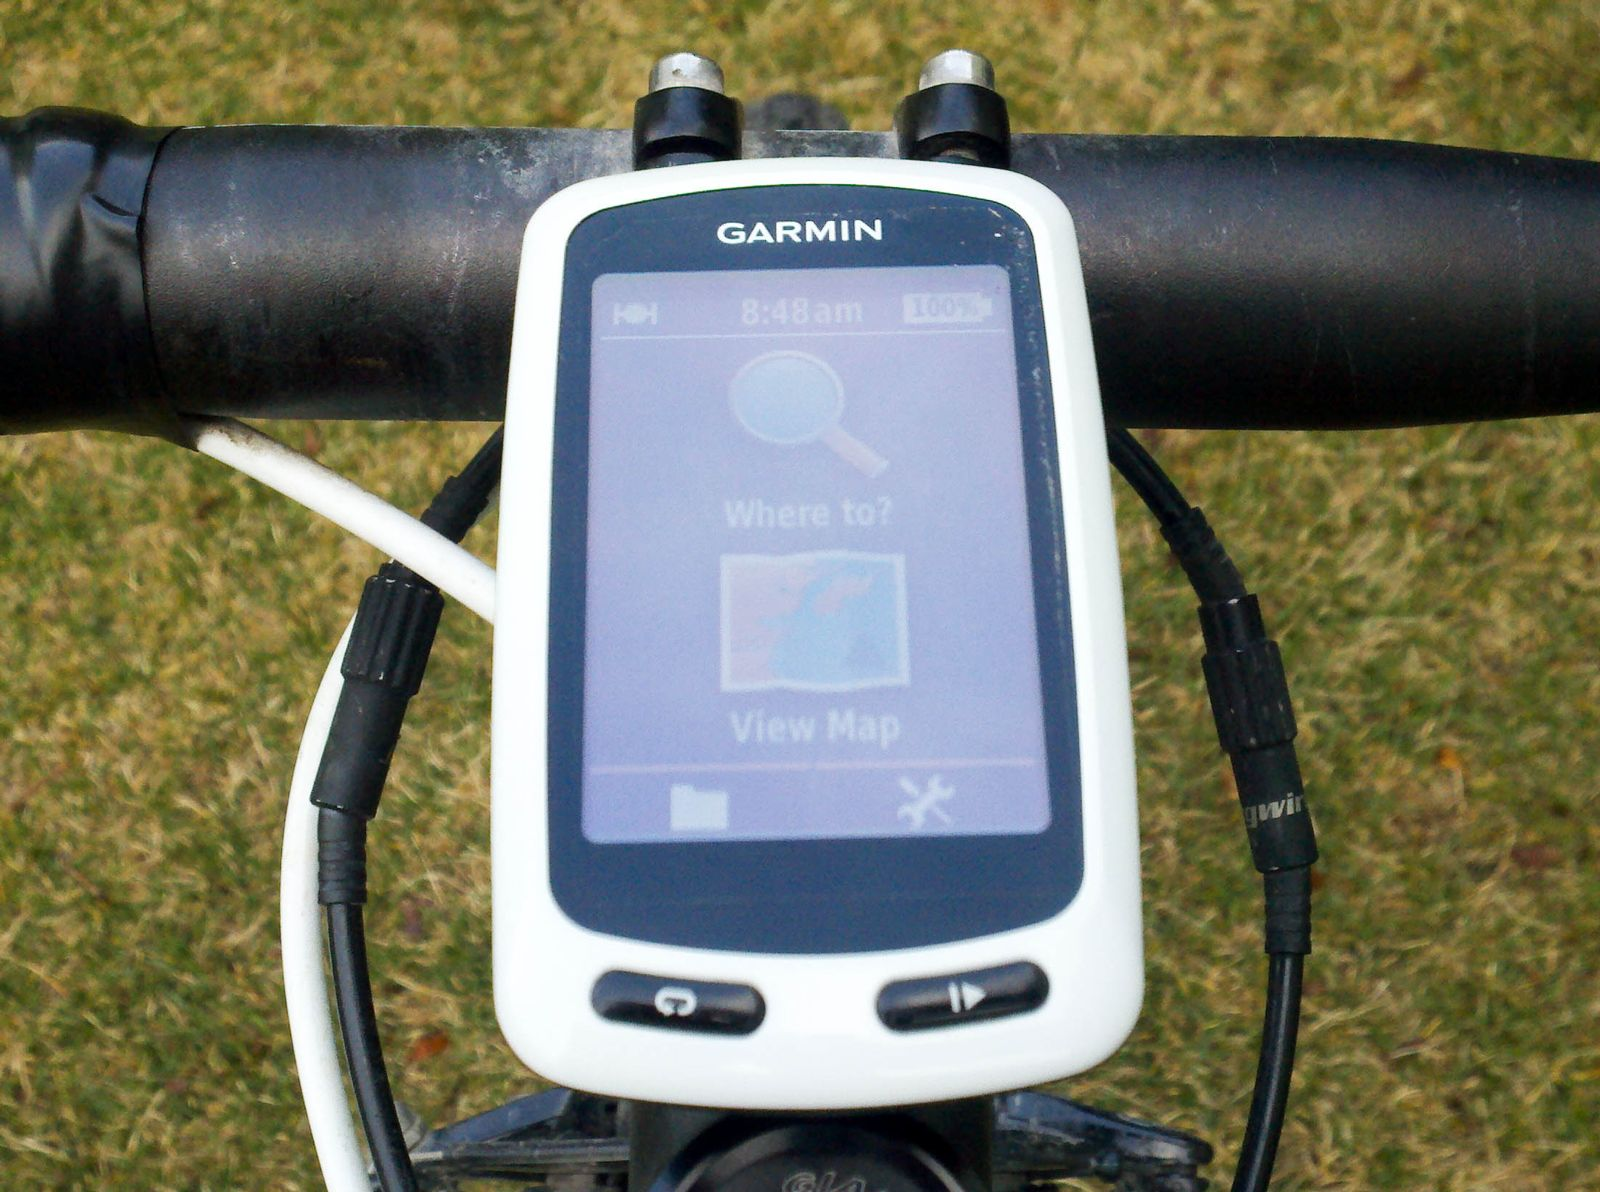 In The Most Recent Issue Of Adventure Cyclist Magazine I Reviewed Garmins Touring Edge Plus Gps Unit To Supplement That Article I Would Like To Share A